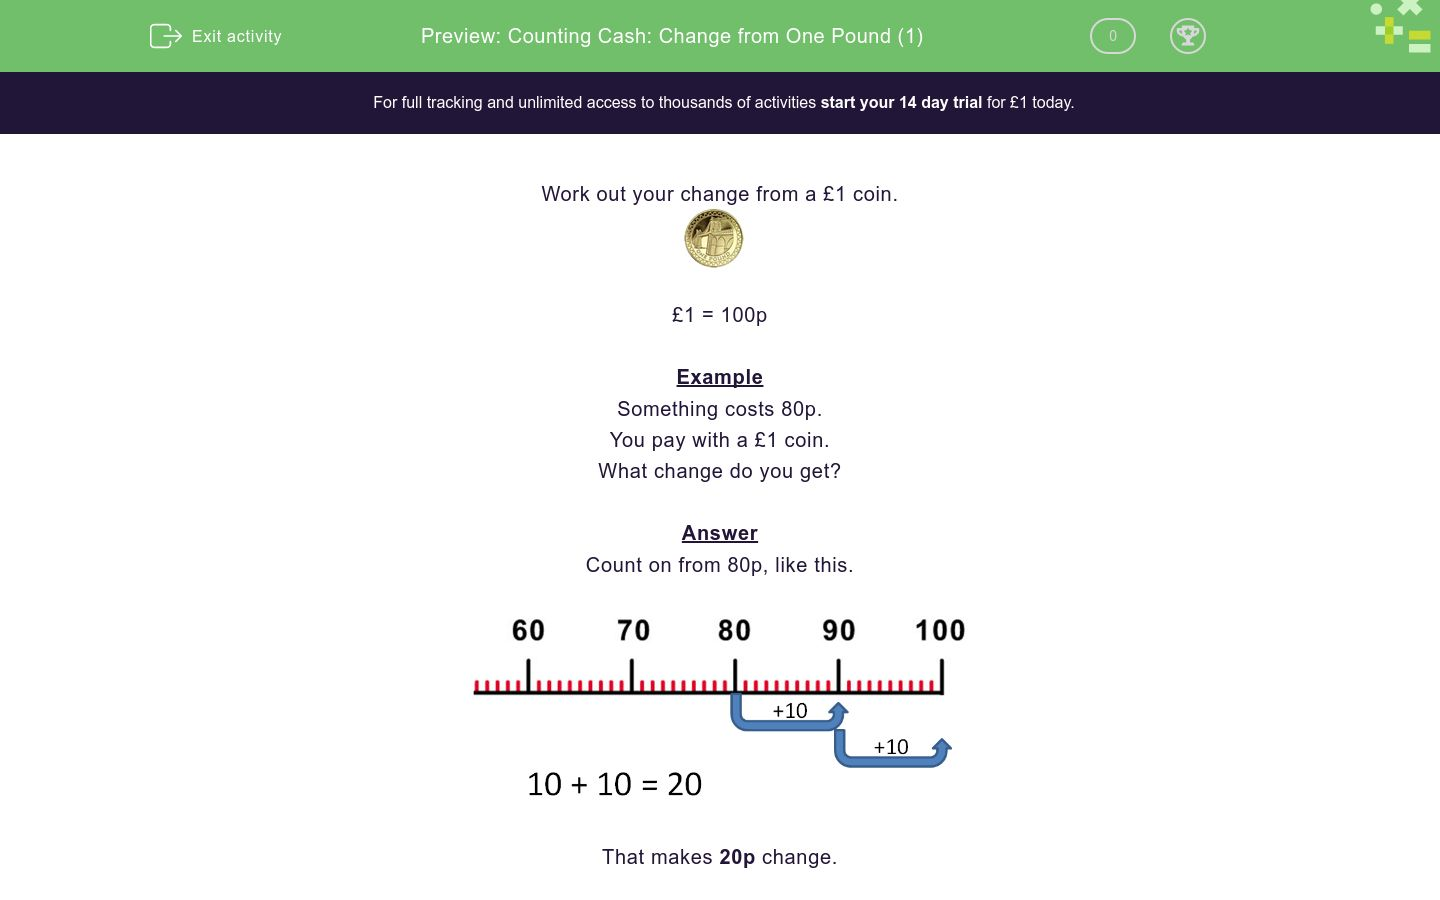 'Counting Cash: Change from One Pound (1)' worksheet